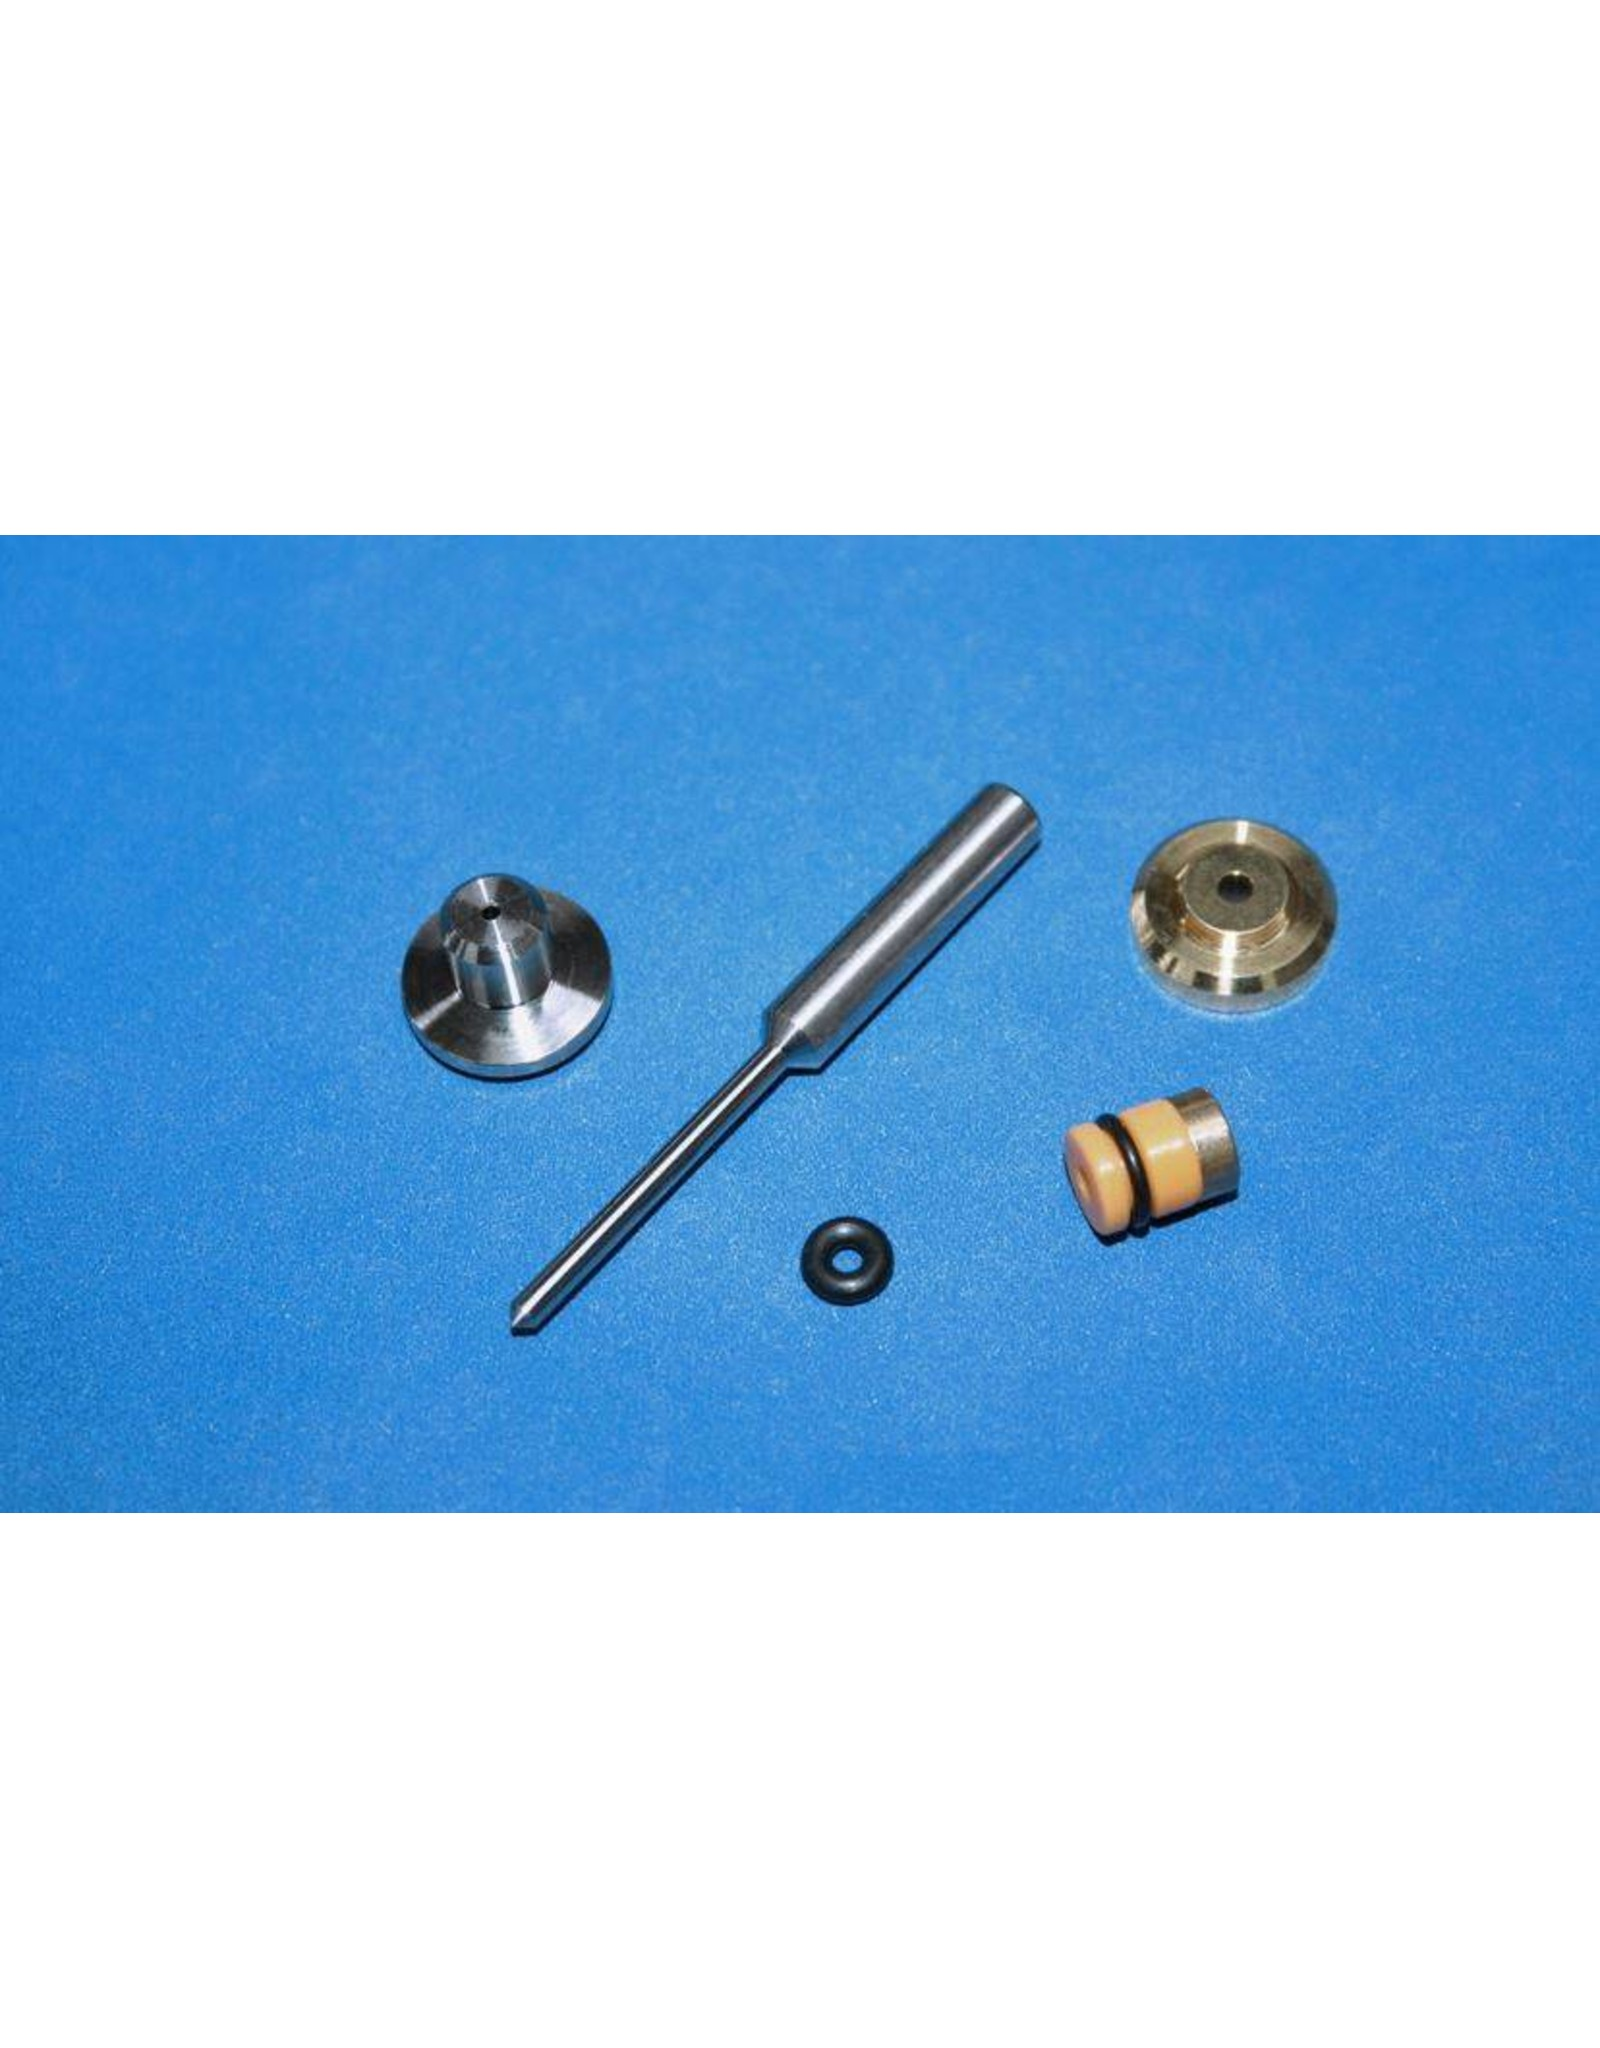 KMT Style Repair Kit, Normally Closed Valve